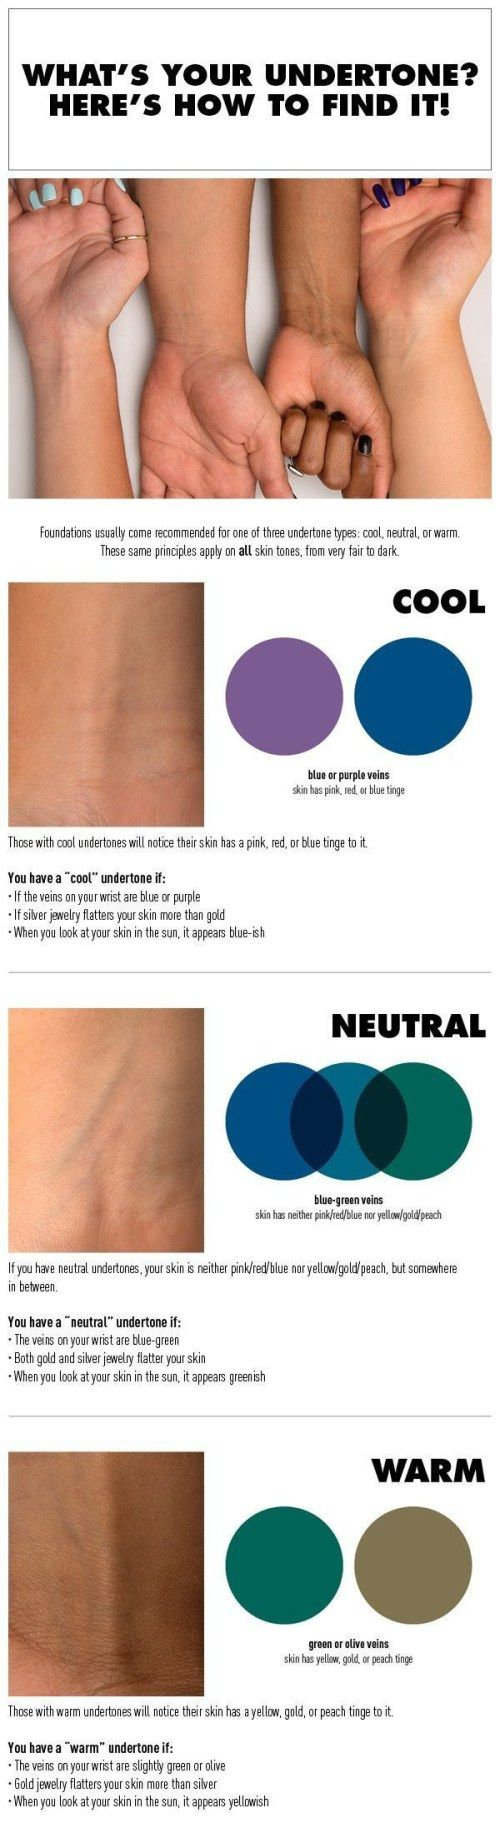 How to Know Your Undertone